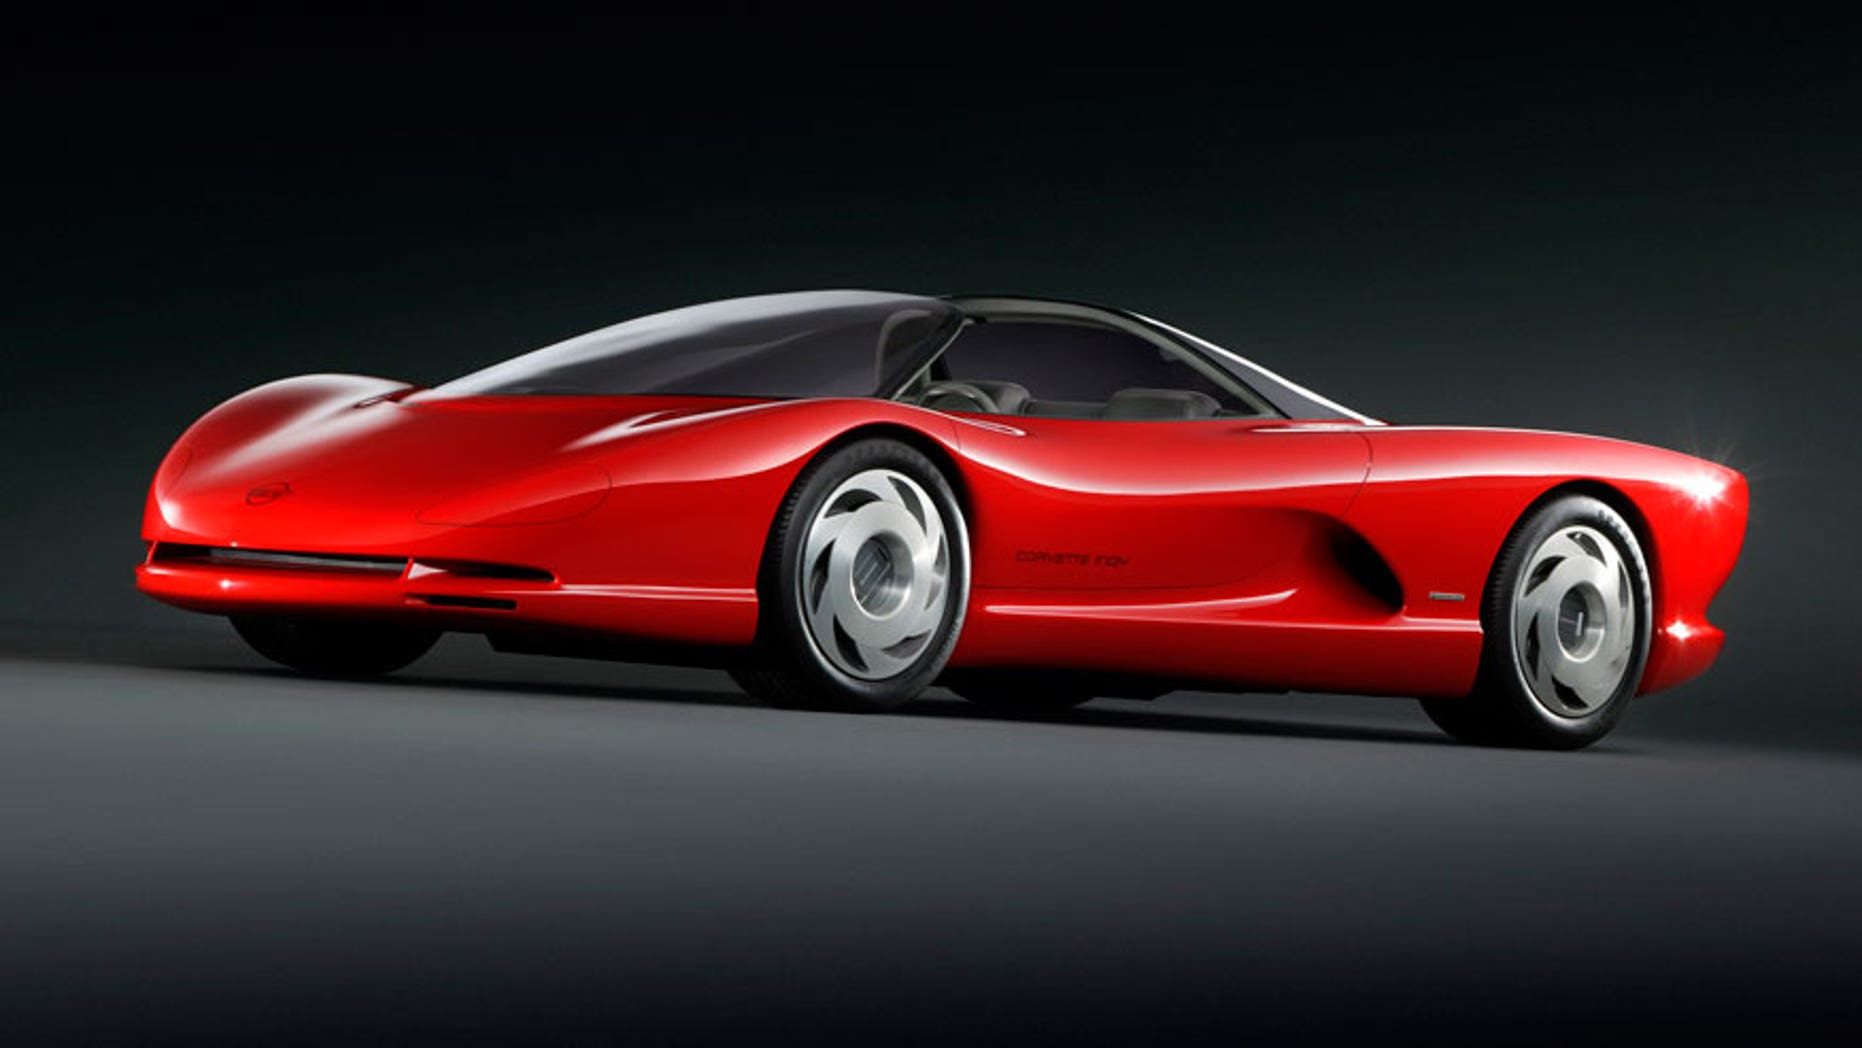 The 1986 Corvette Indy is one of several mid-engine concepts GM has created over the years